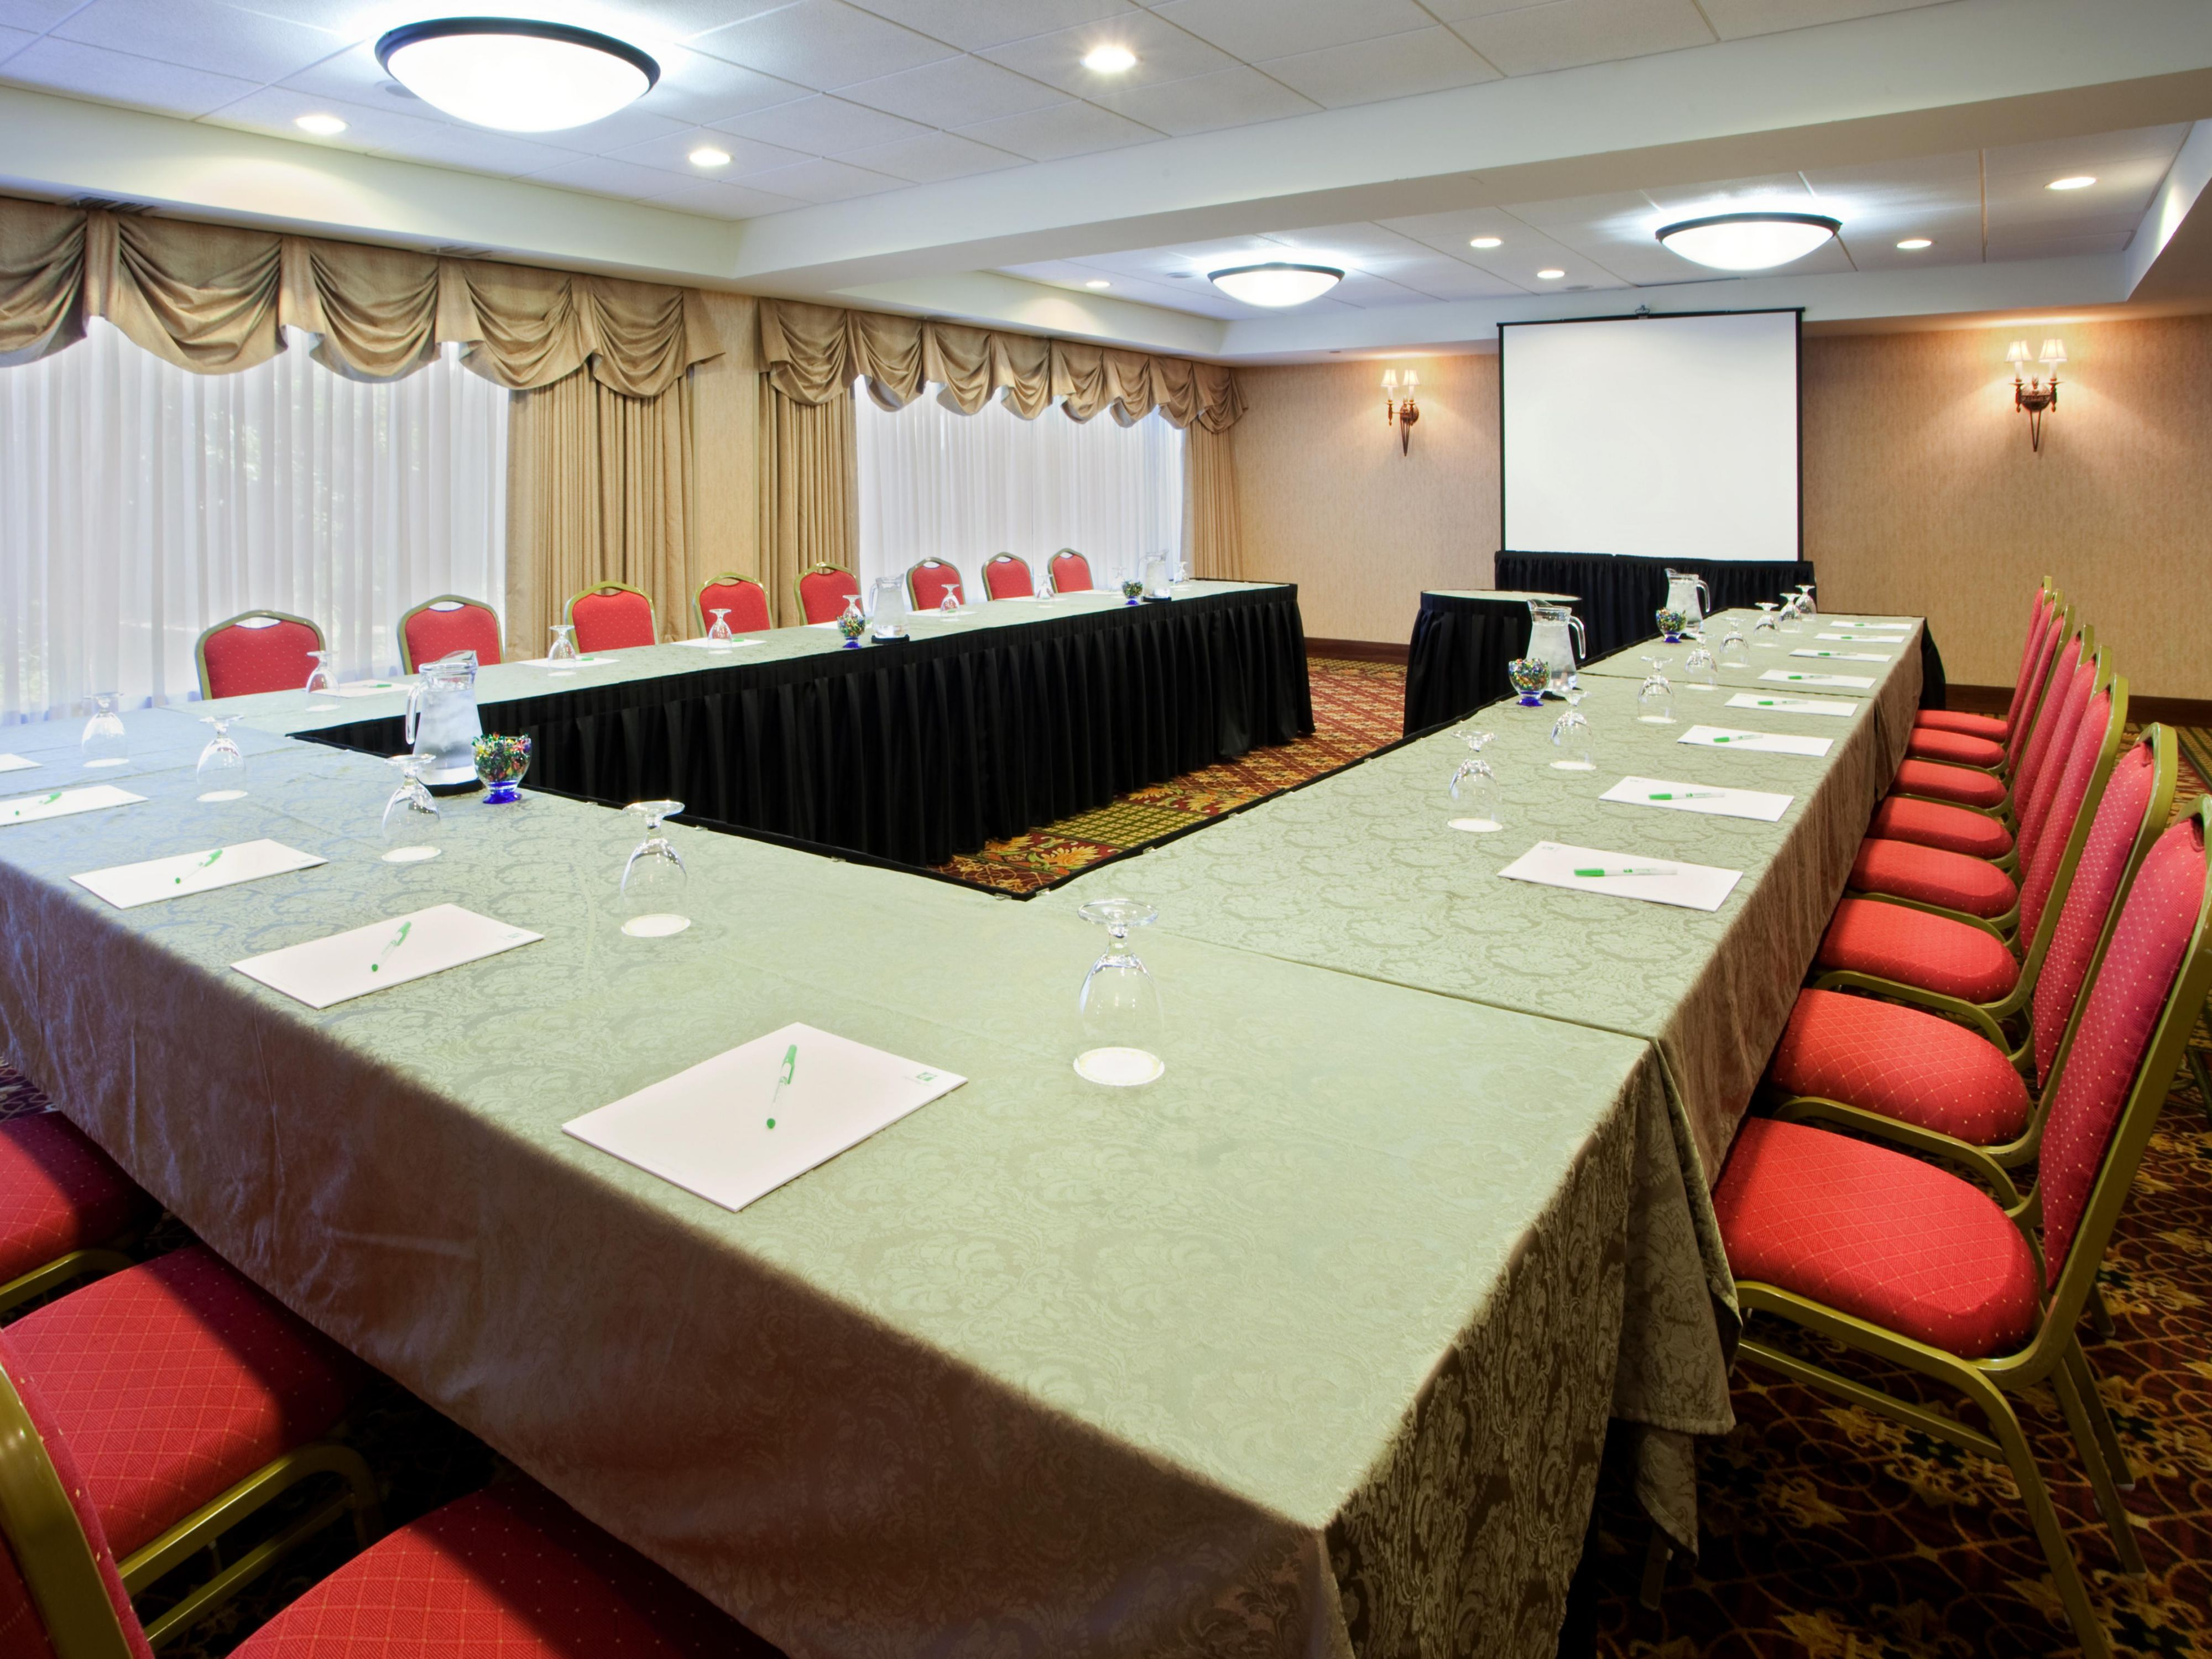 Our meeting rooms can accommodate several meeting setups